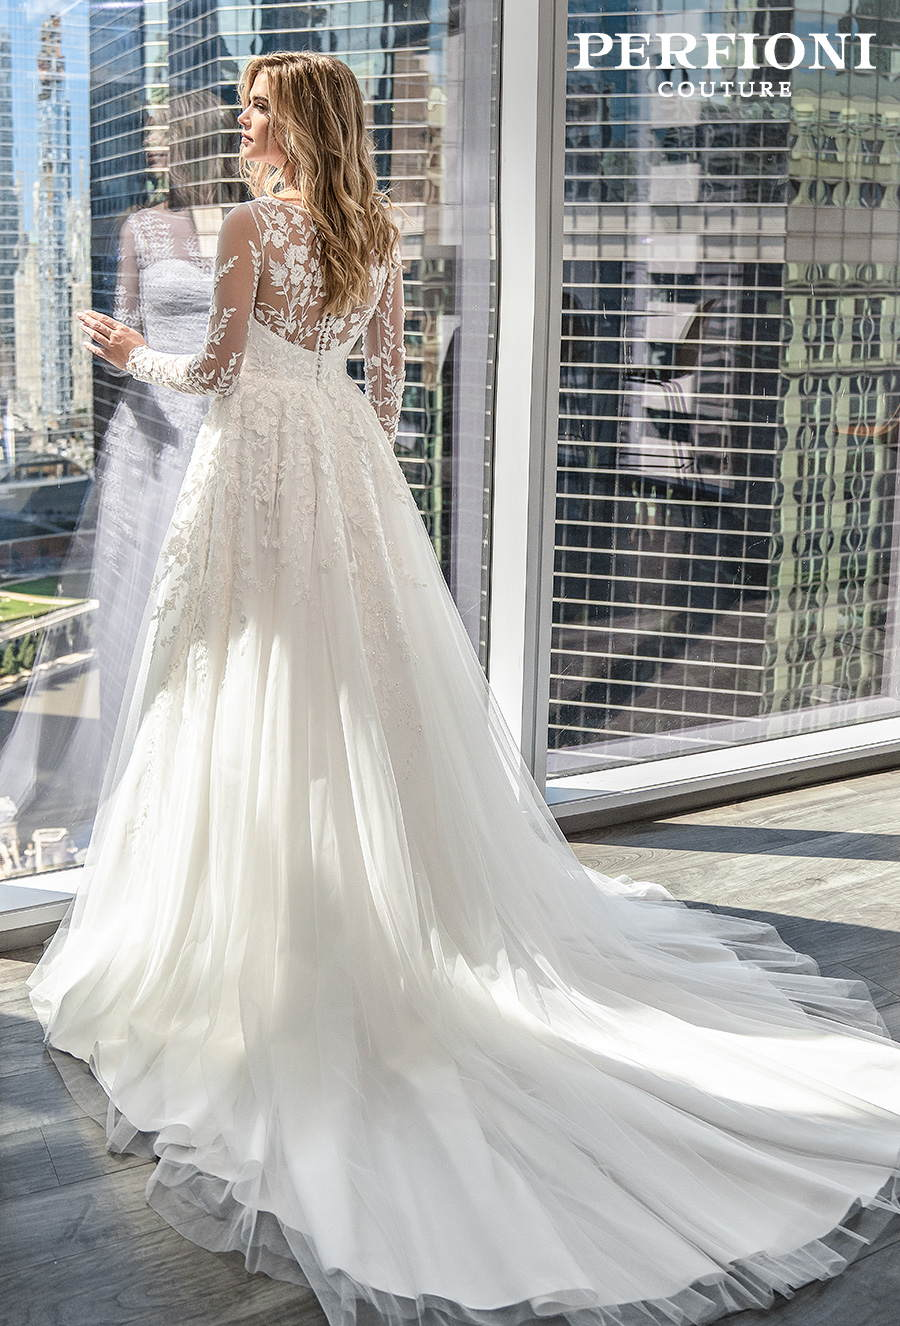 perfioni 2020 piter martines bridal long sleeves illusion jewel sweetheart neckline heavily embellished bodice romantic a line wedding dress sheer lace button back chapel train (004) mv bv